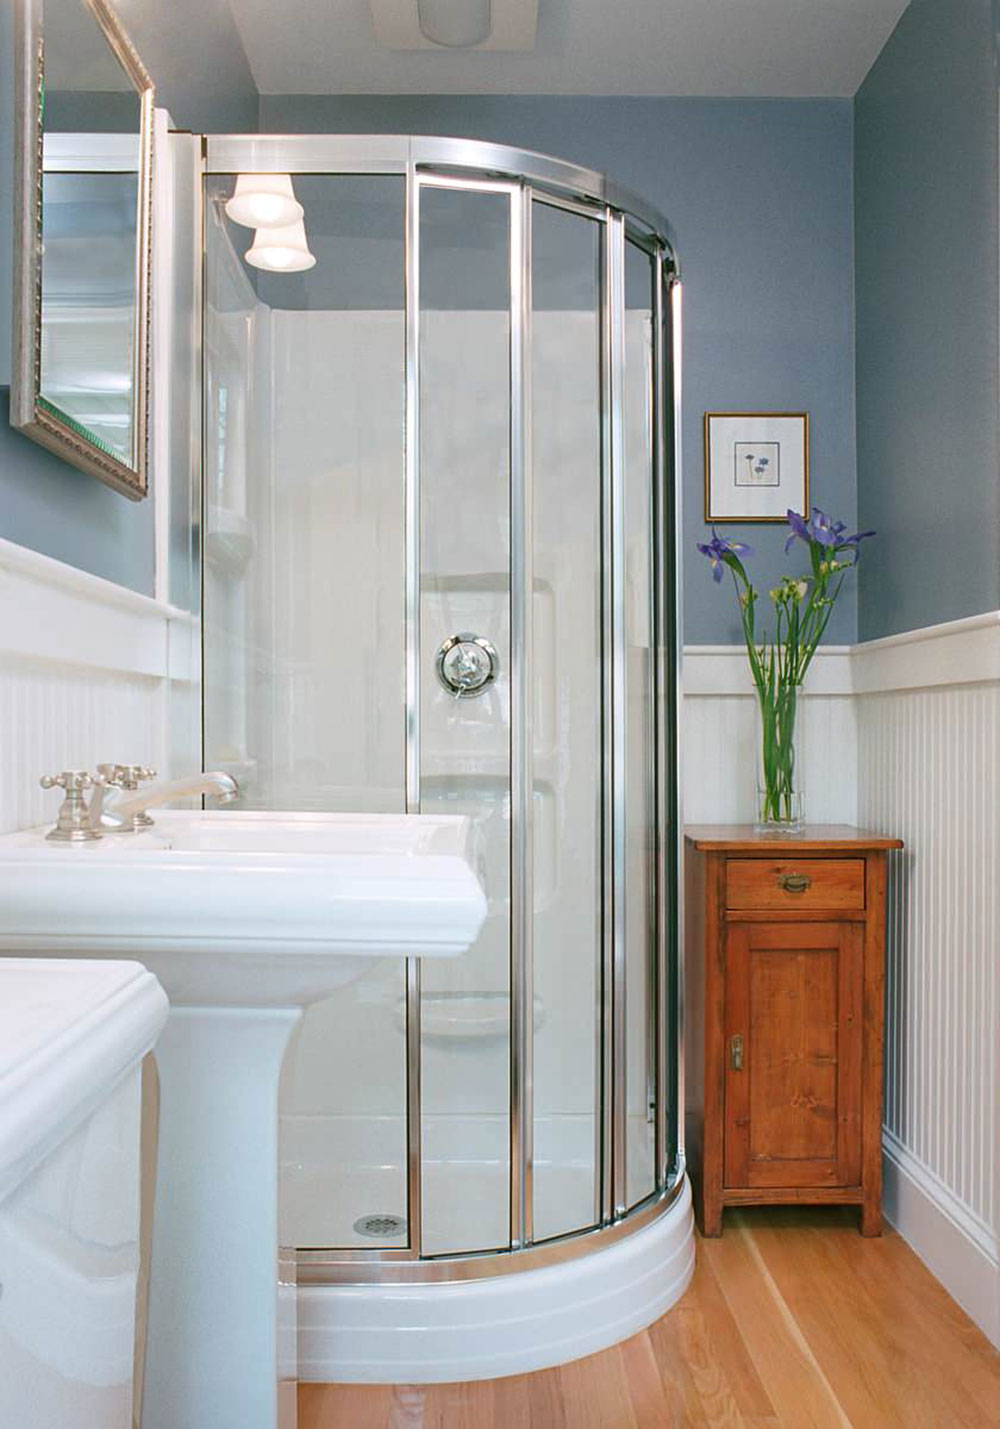 How To Make A Small Bathroom Look Bigger   Tips and Ideas How To Make A Small Bathroom Look Bigger     Tips and Ideas